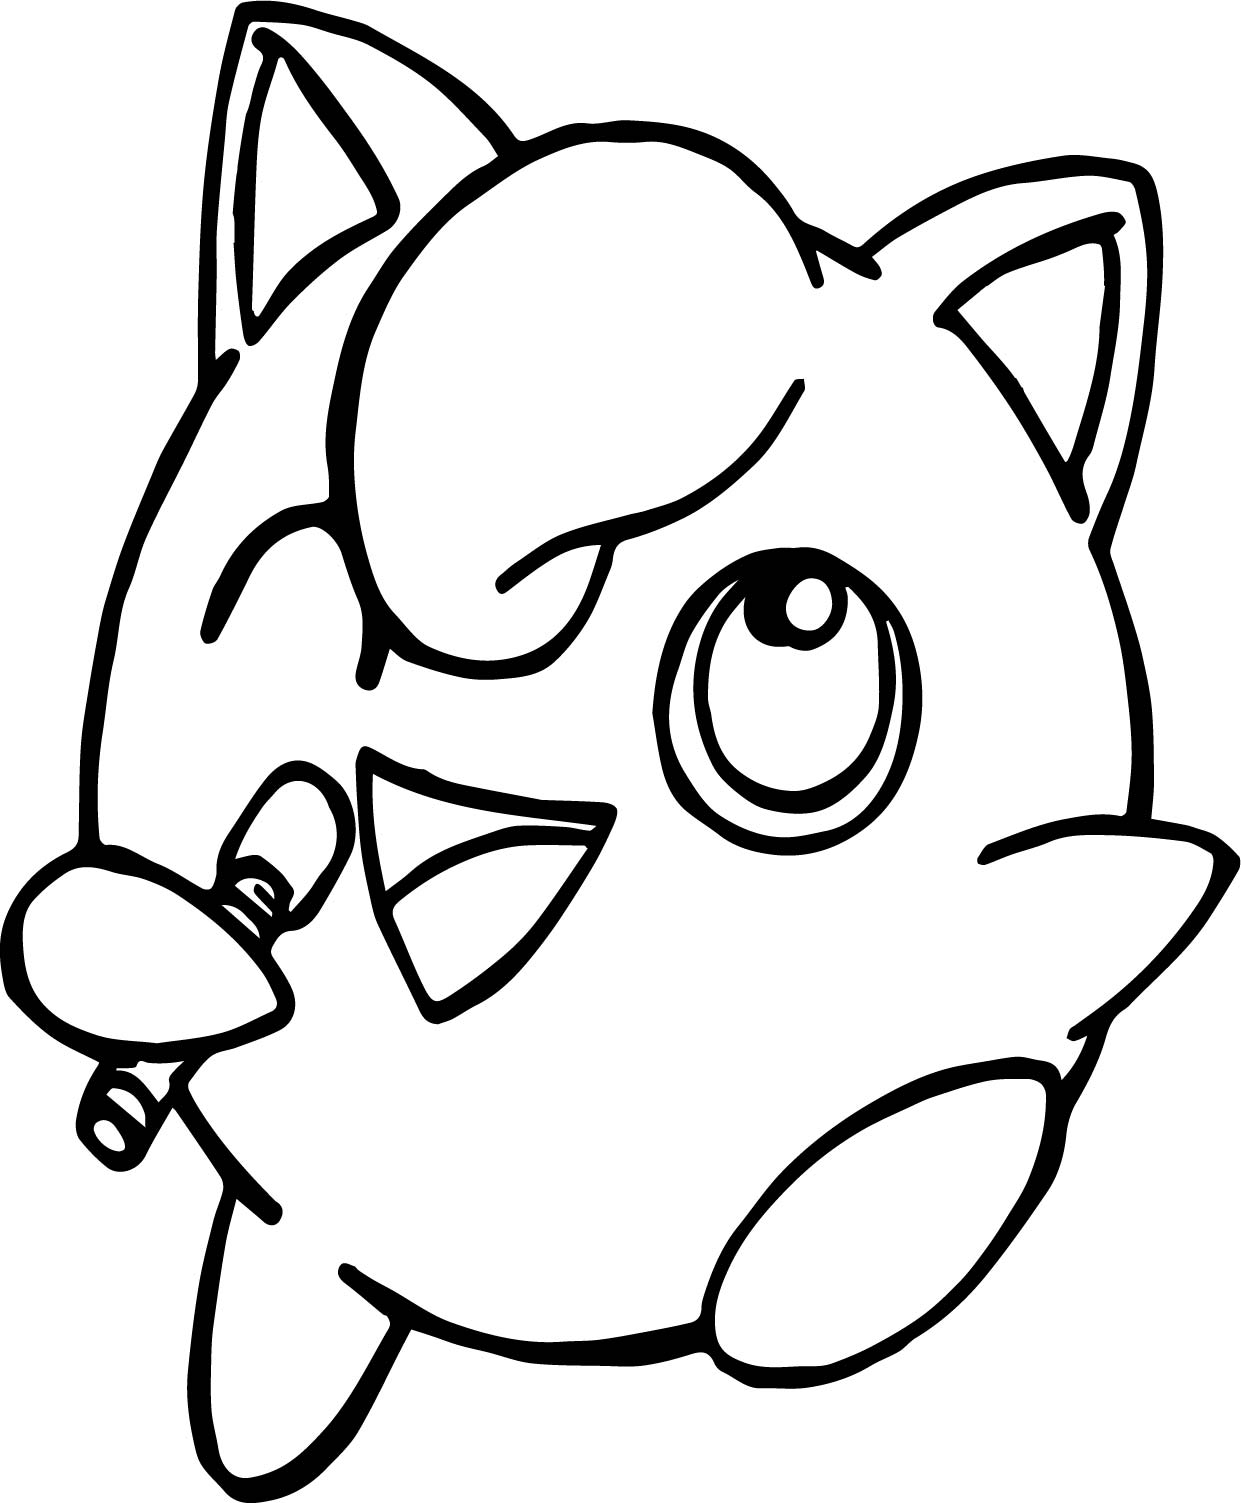 Jigglypuff Song Coloring Page